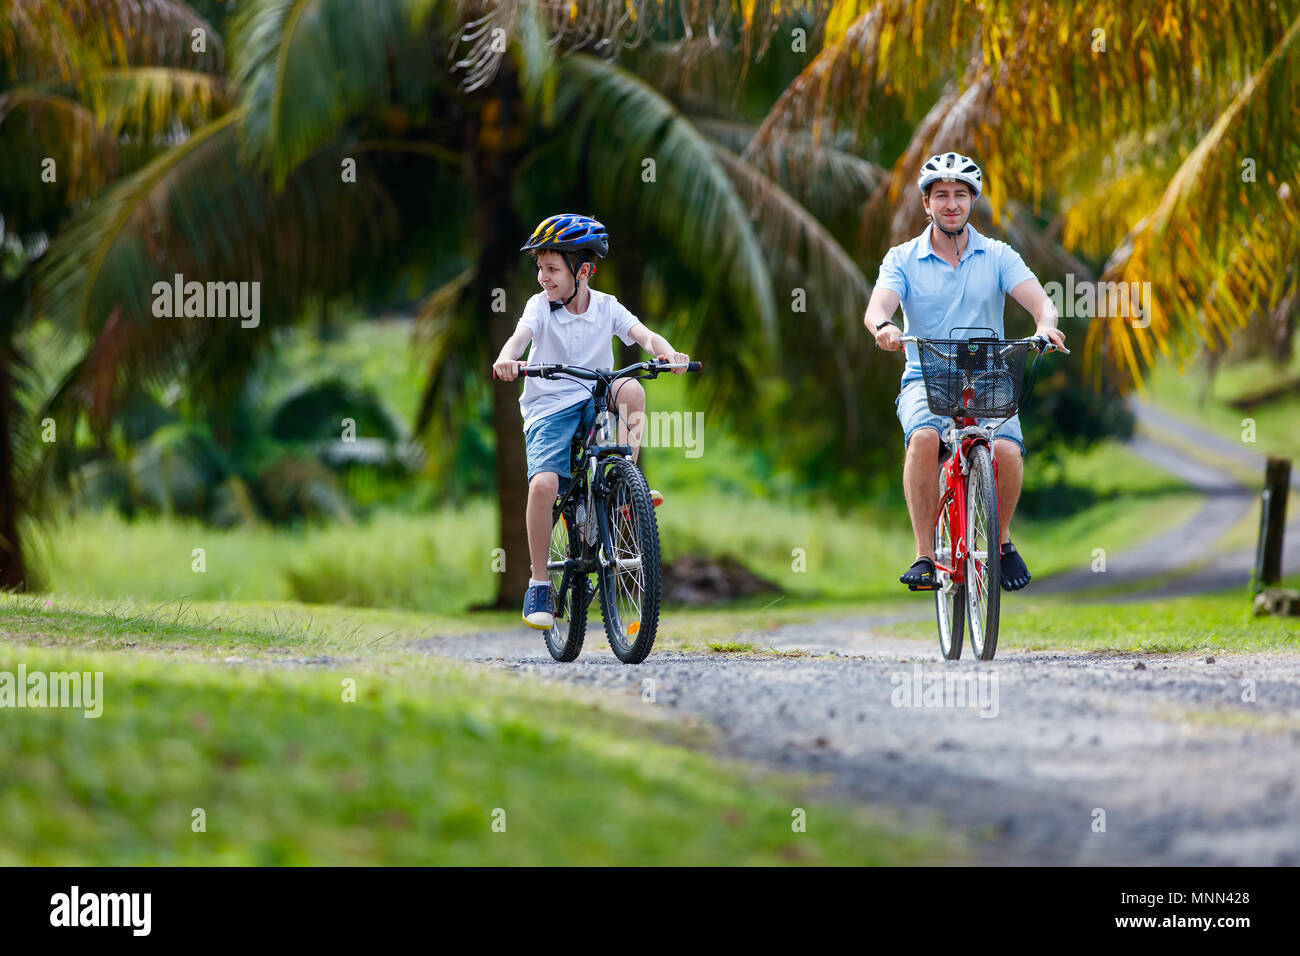 Family of father and son biking at tropical settings - Stock Image